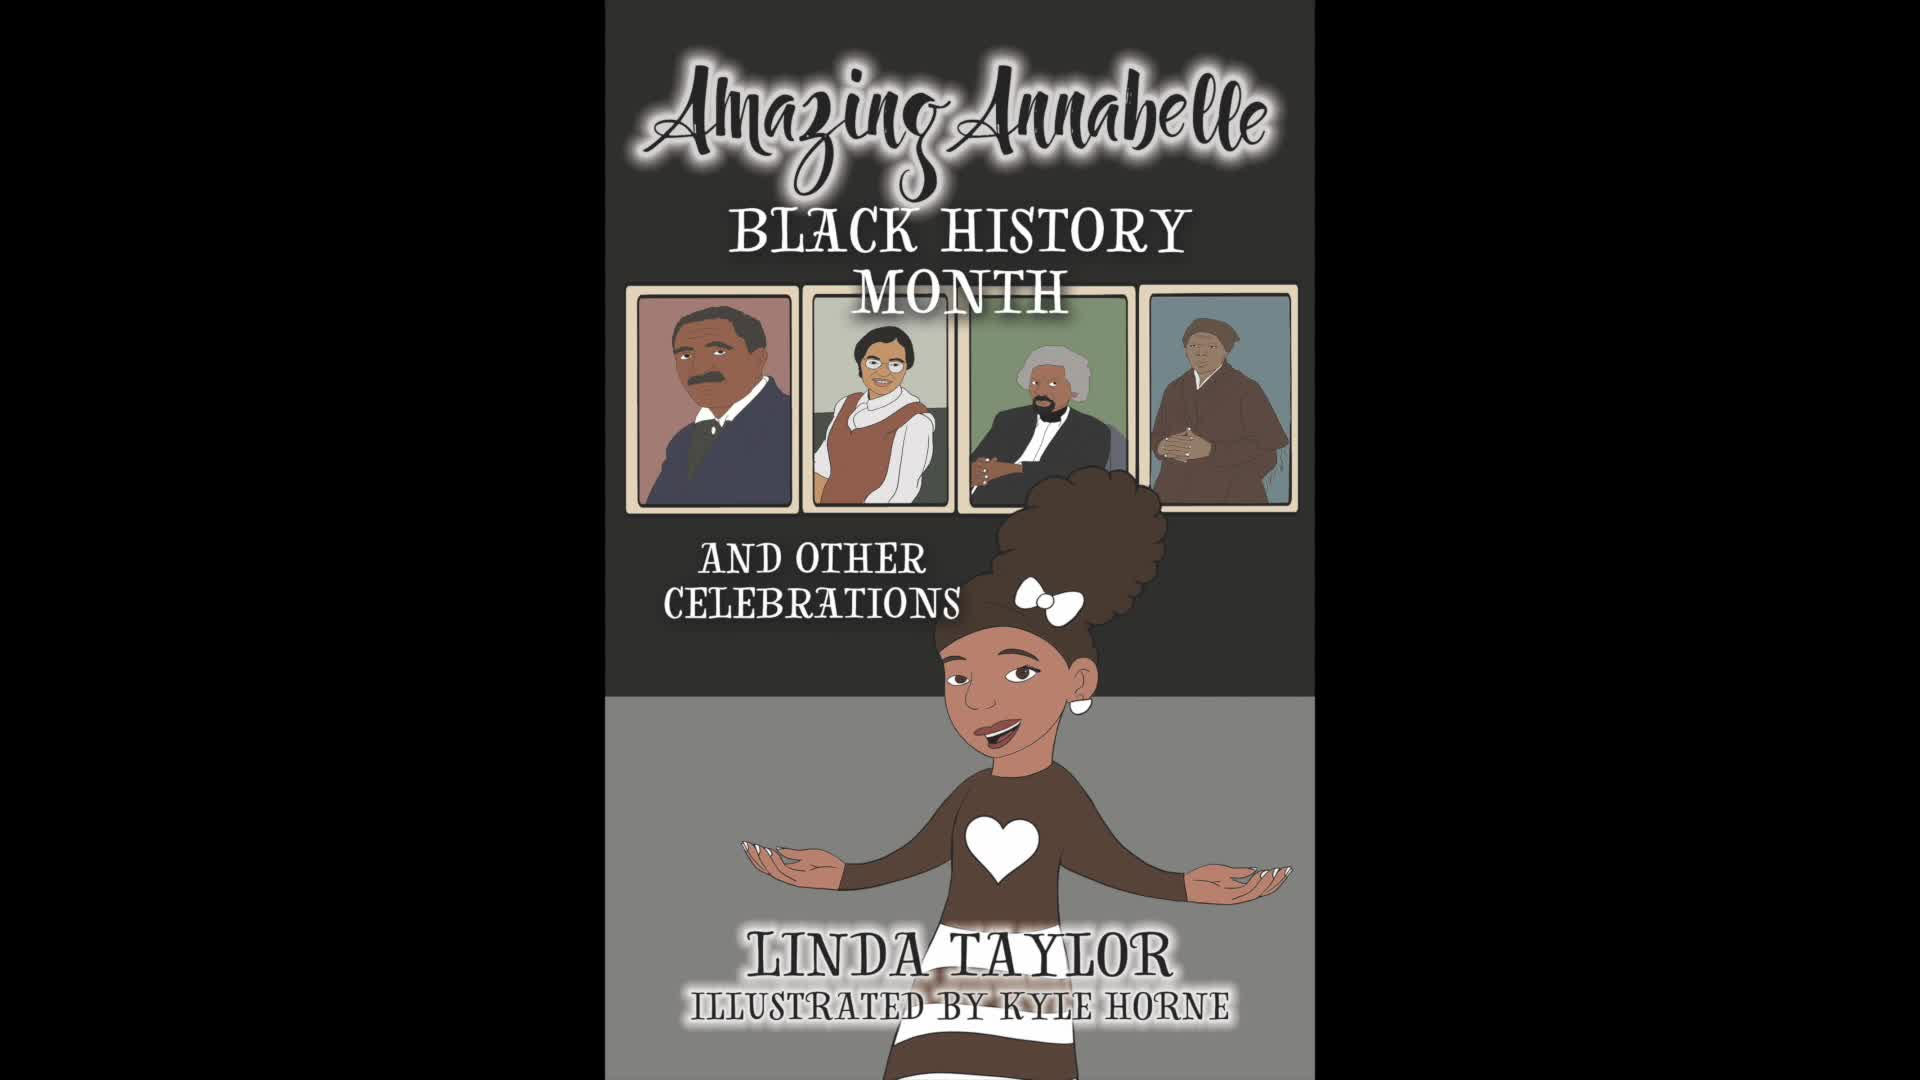 Amazing Annabelle Black History Month Chapter 1